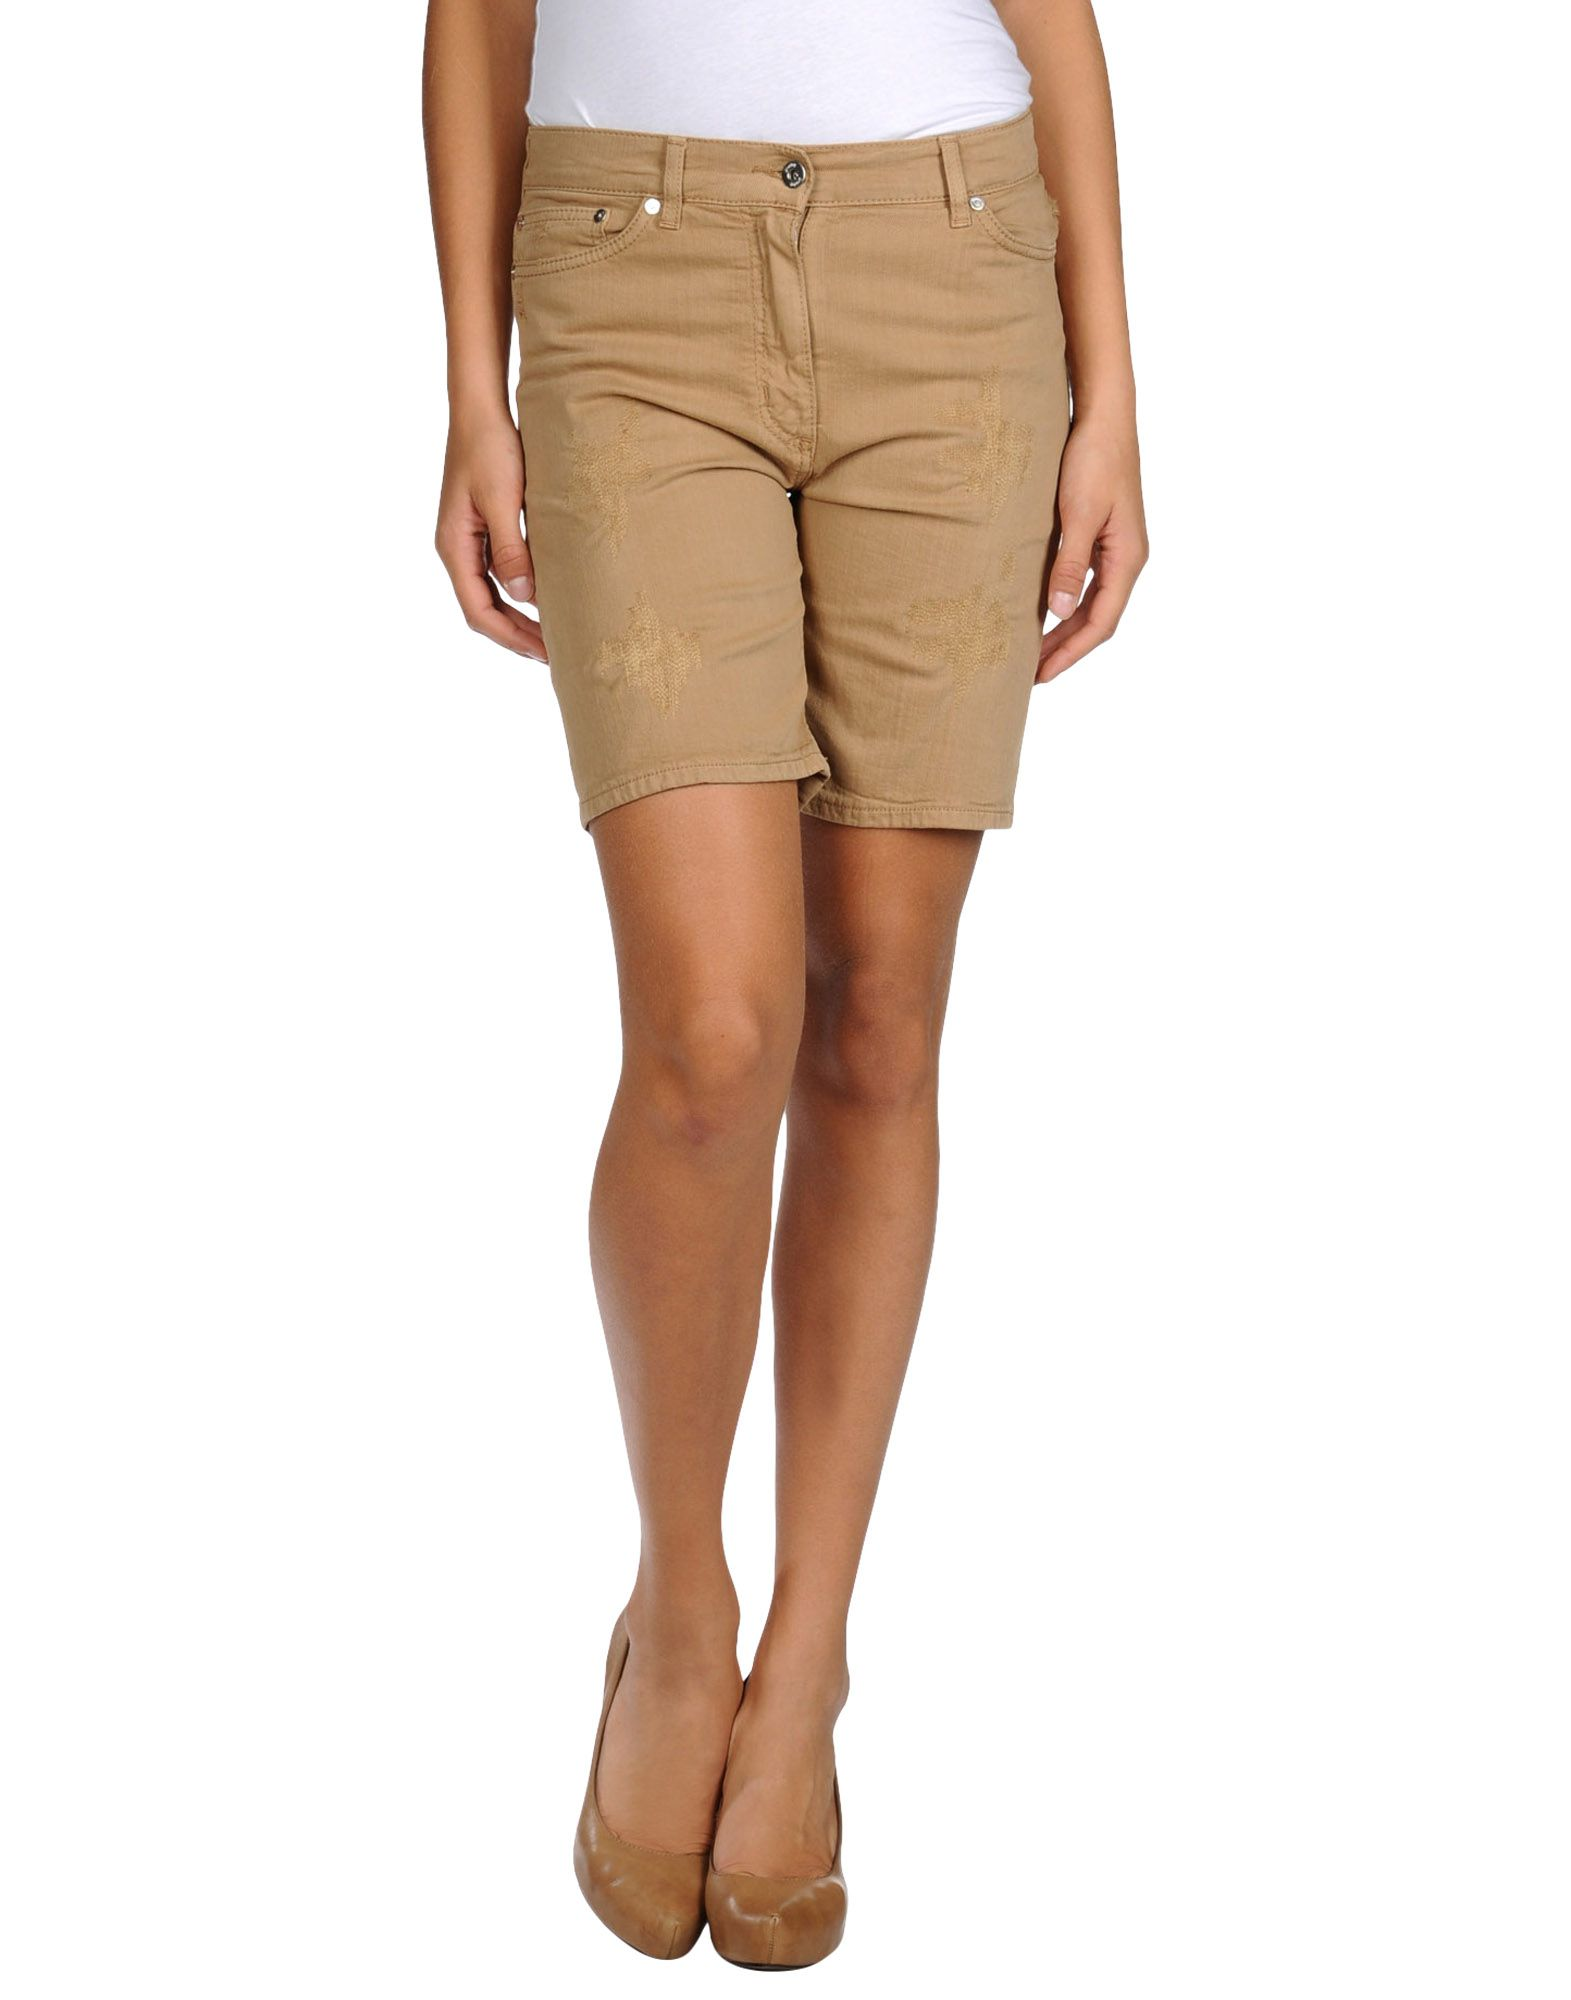 Find khaki shorts for every style with this selection of casual duds at Gap. Stylish Casual Fashion. You want to look cool and effortless. Khaki shorts get the job done with an array of comfortable picks that work for the warm weather season.